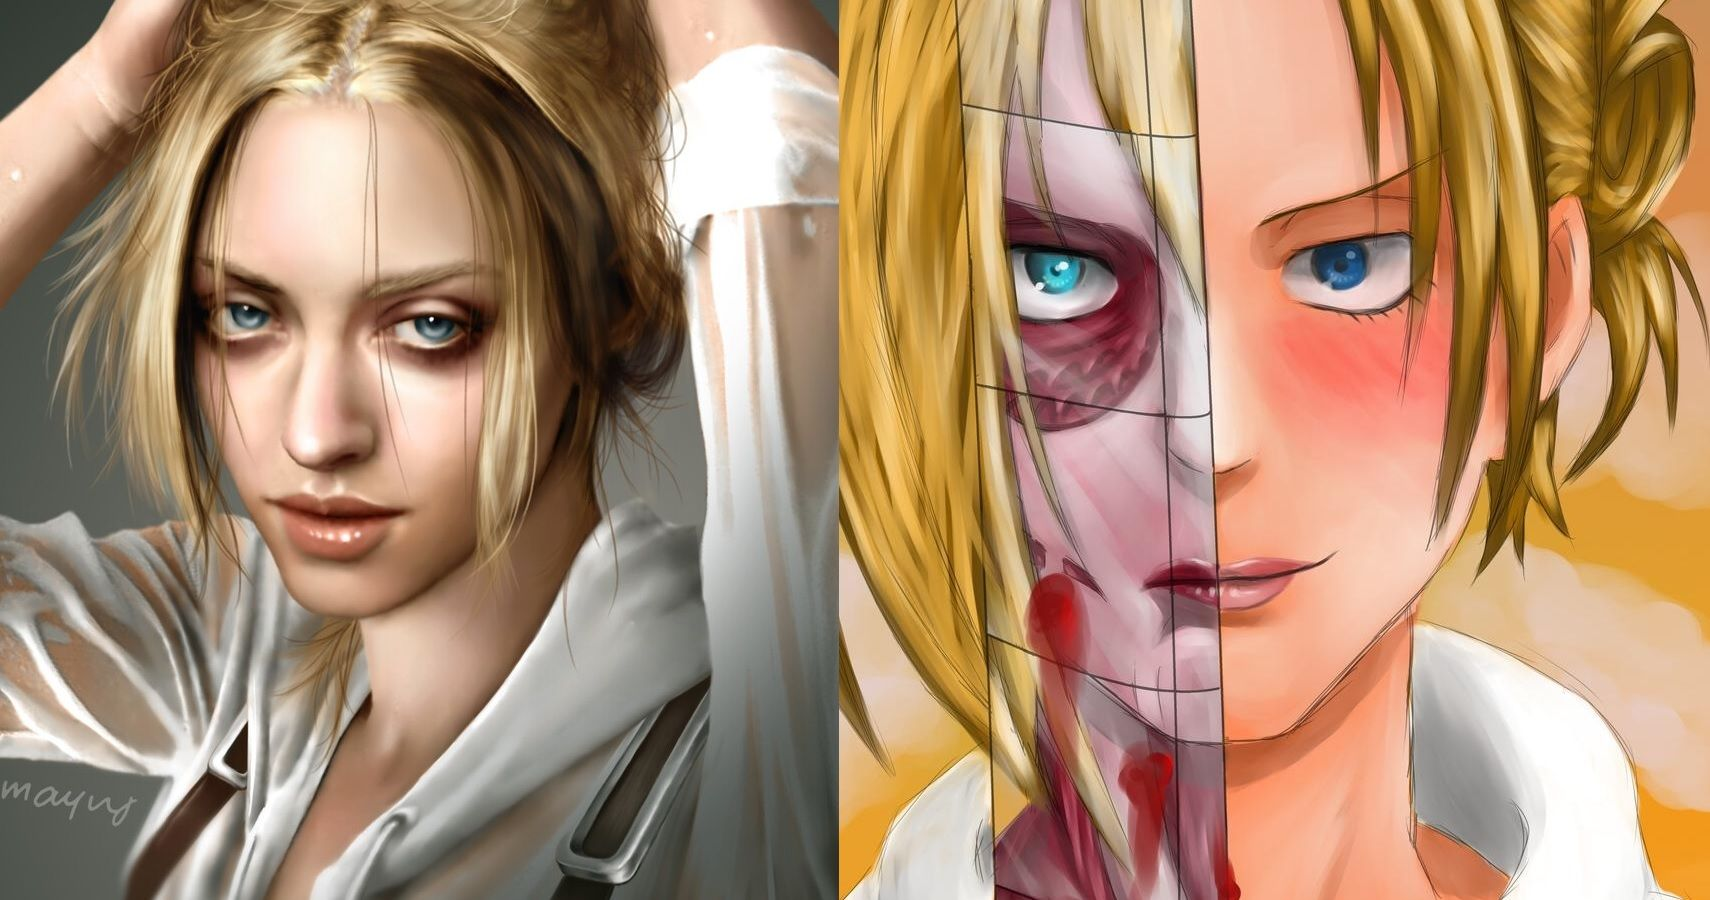 Attack On Titan 10 Annie Leonhart Fan Art Pictures Just Like The Anime